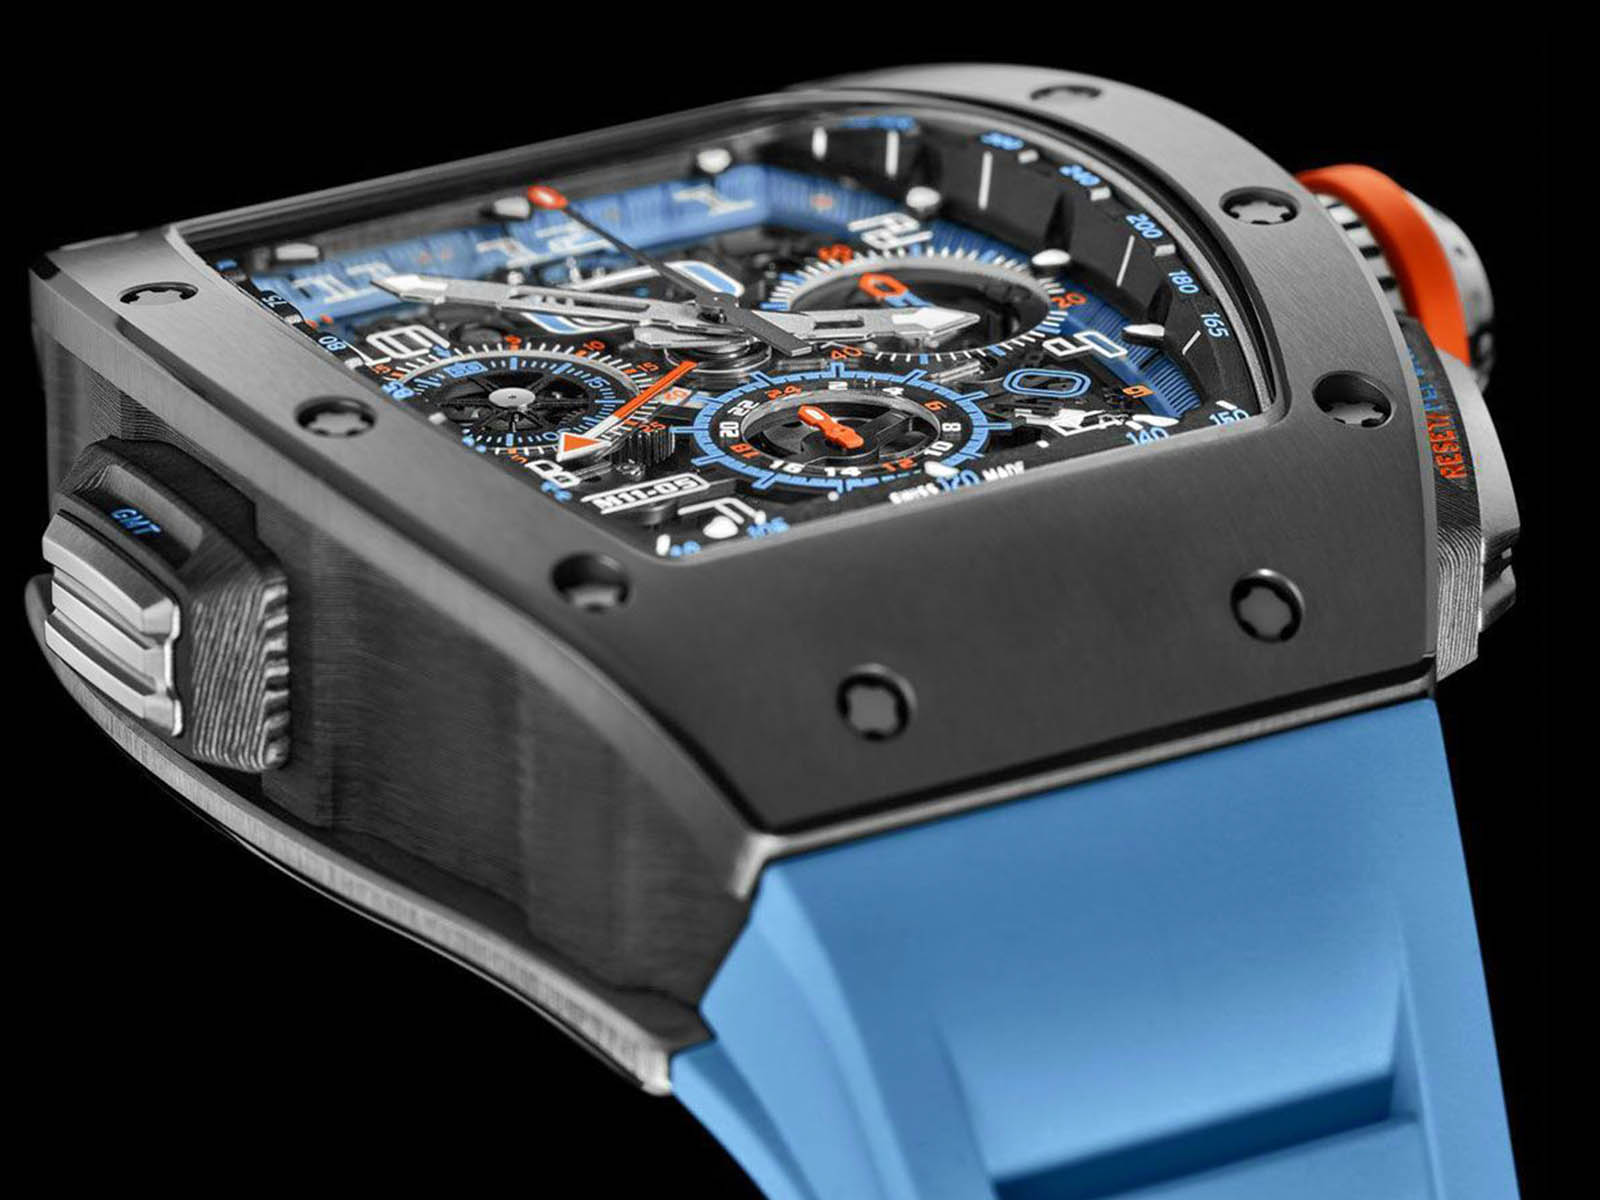 rm-11-05-richard-mille-automatic-flyback-chronograph-gmt-cermet-5.jpg